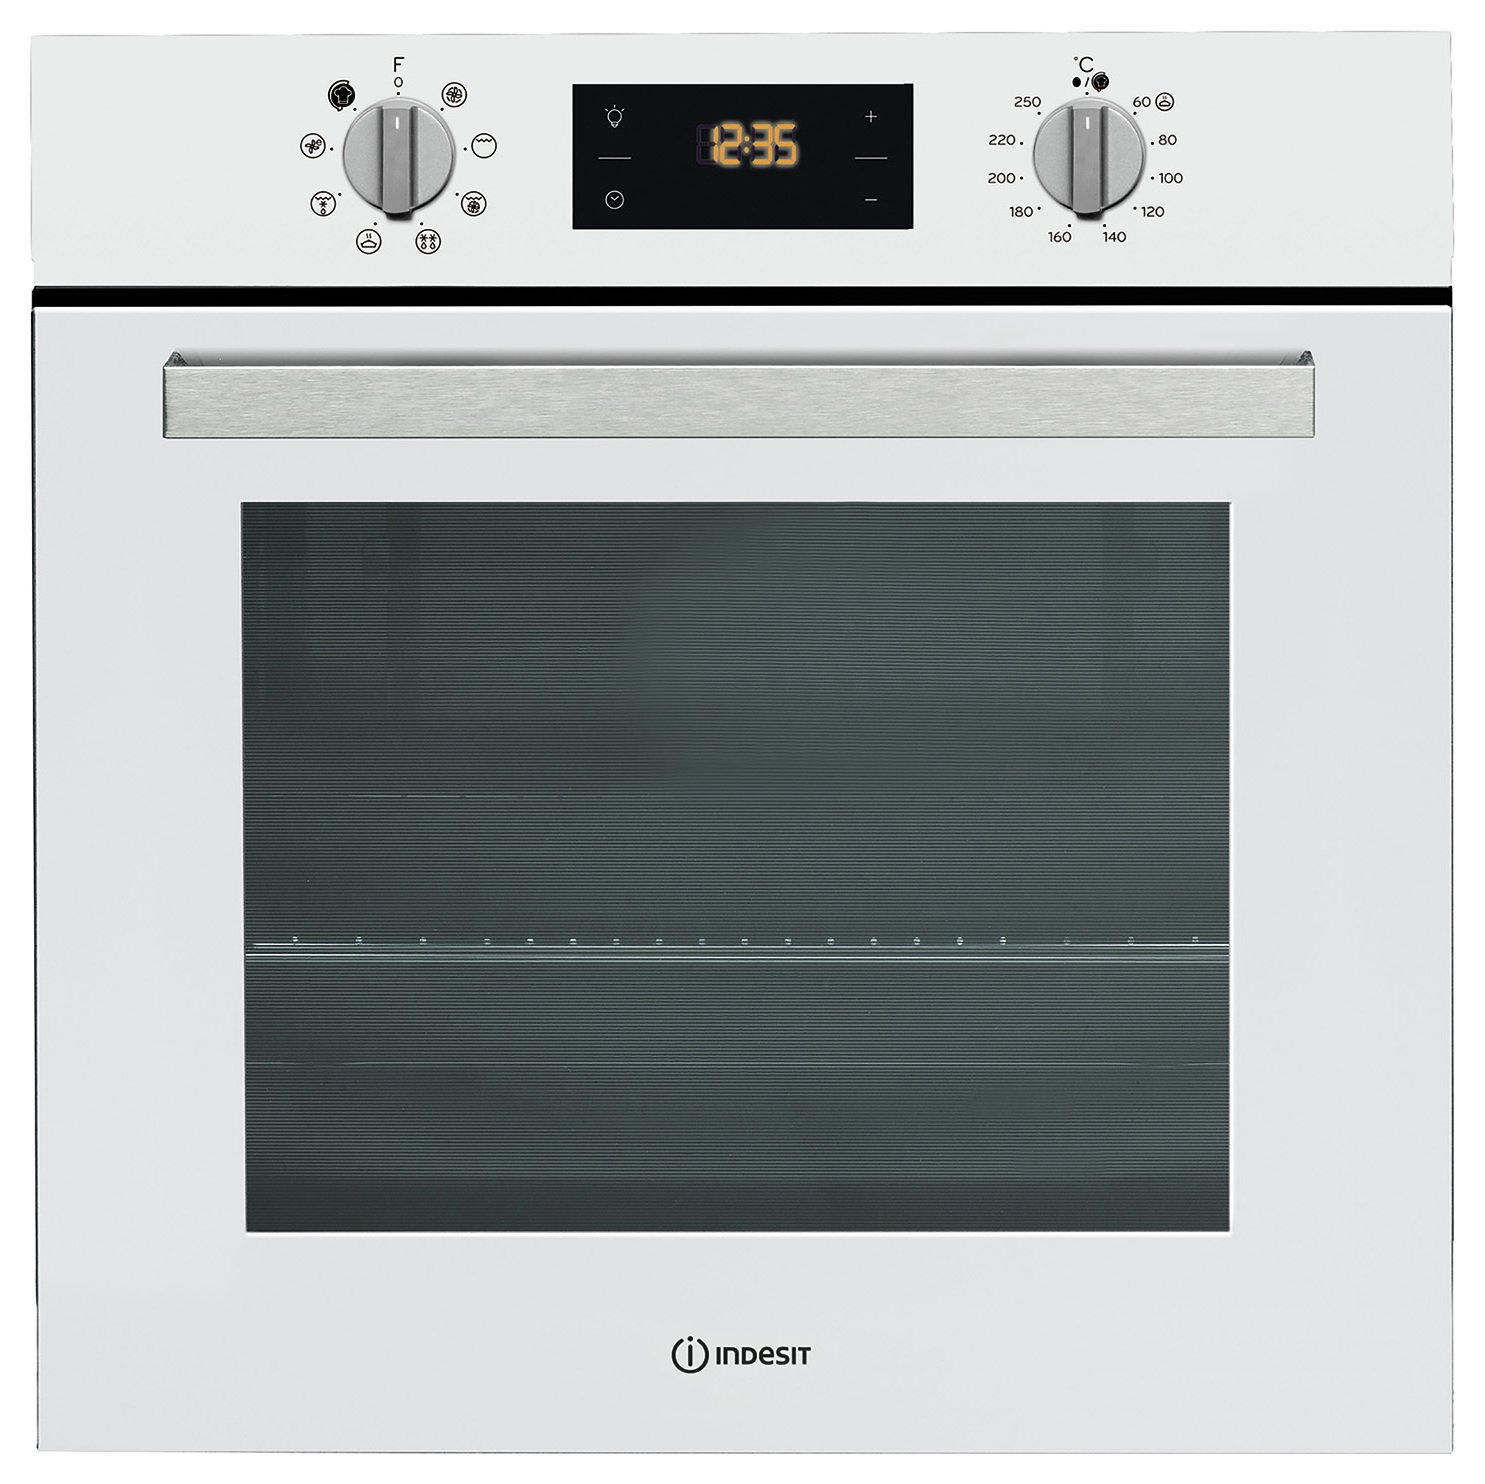 Indesit IFW6340 Built In Single Electric Oven - White